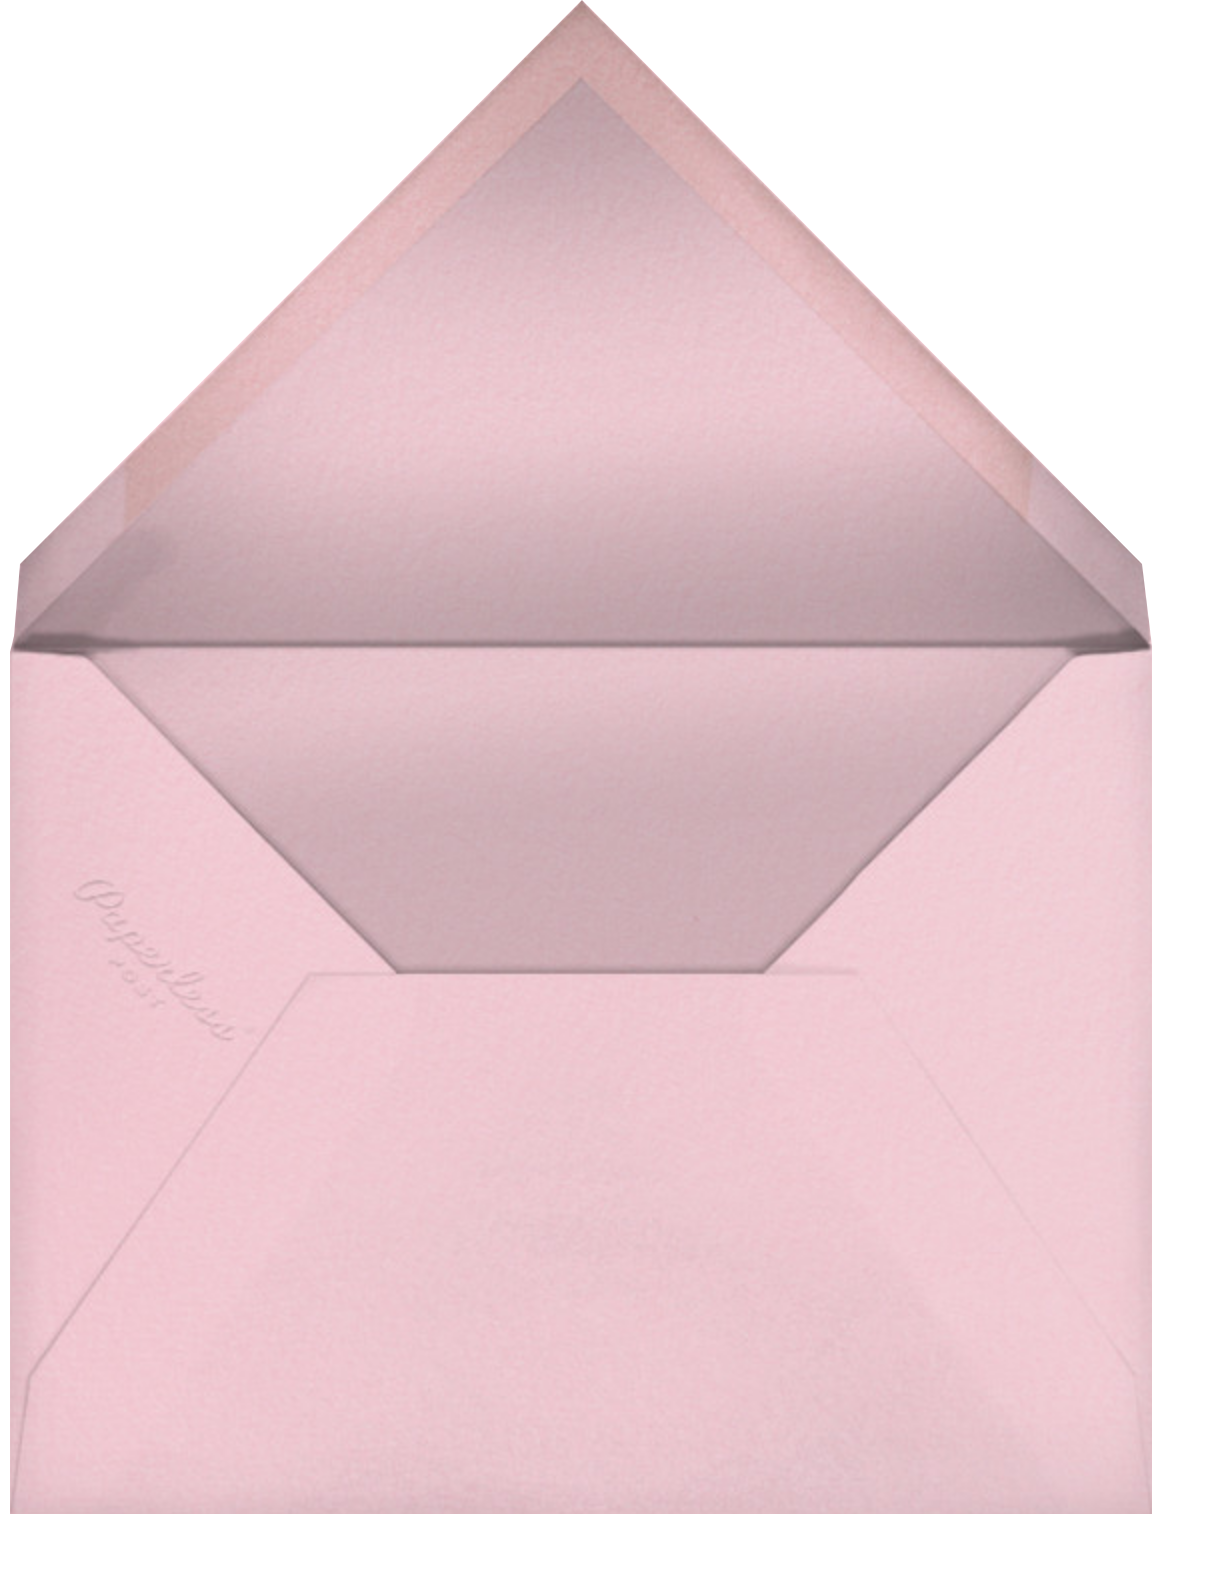 Shake N Roll - Silver - Paperless Post - Cocktail party - envelope back